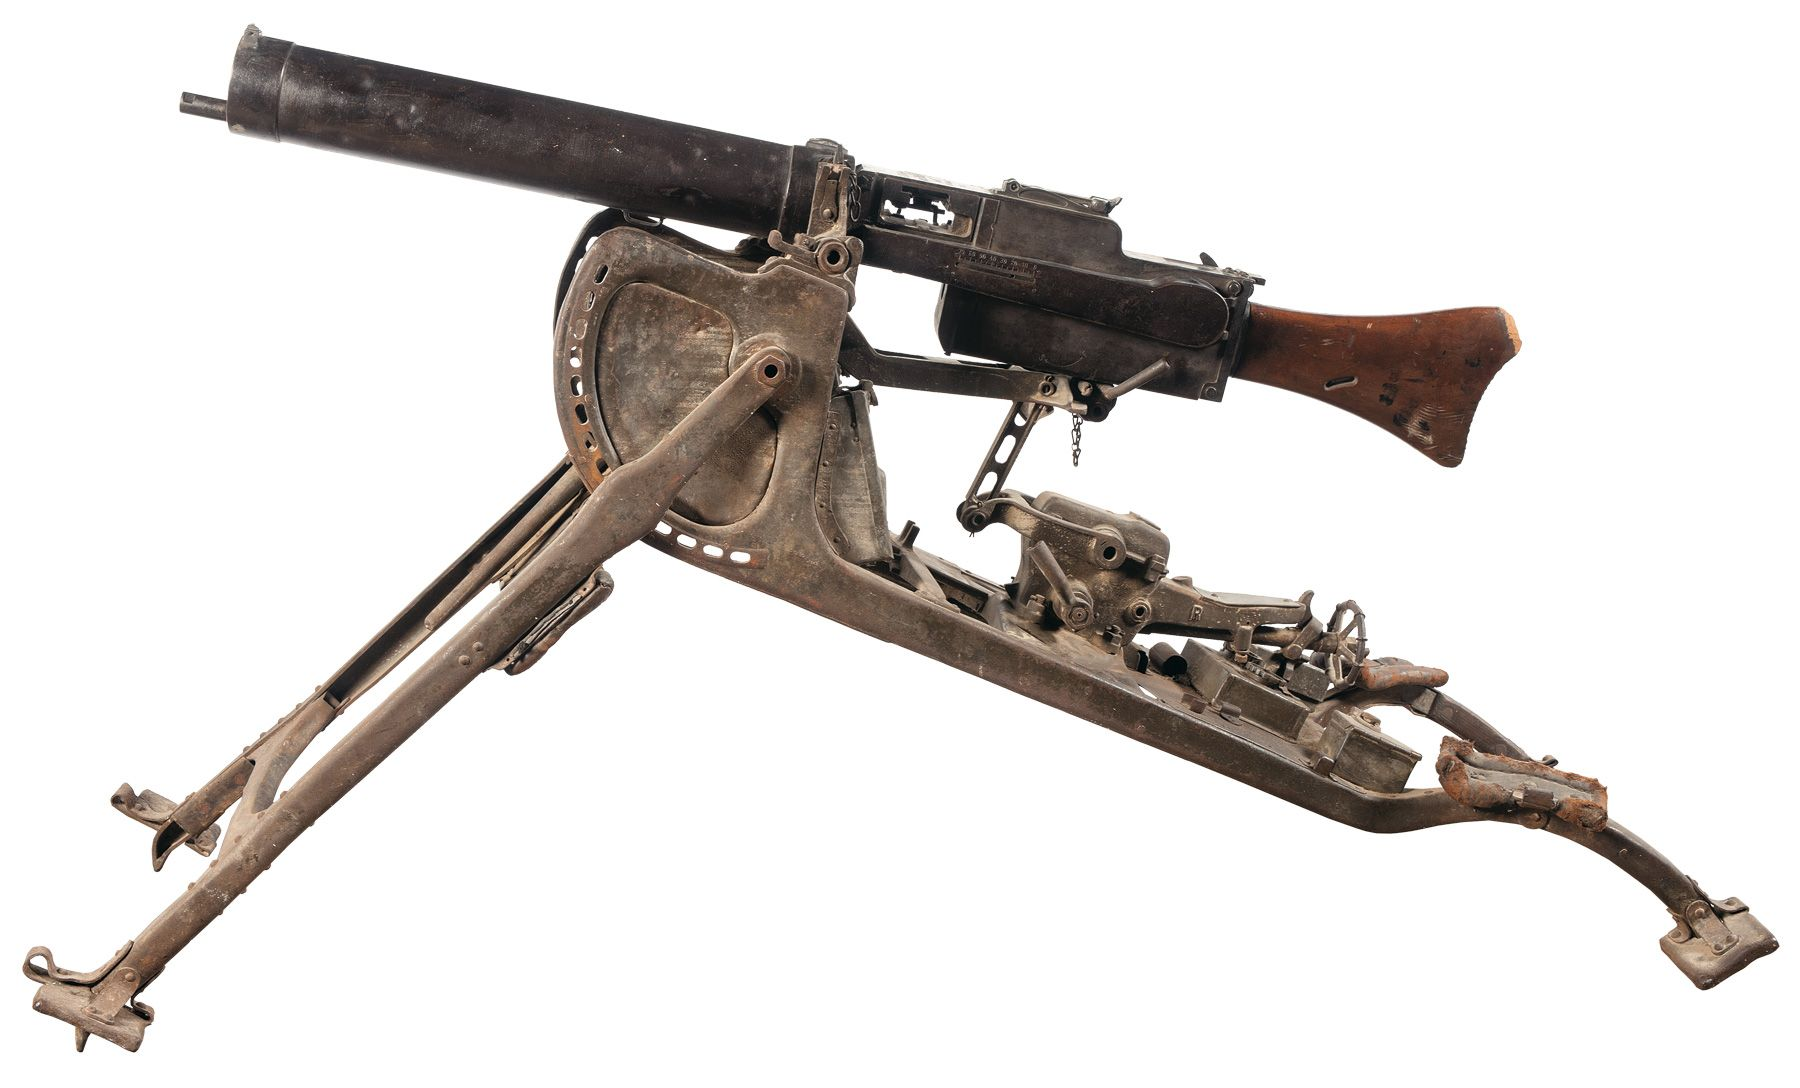 weapon revolution ww1 2014-06-05 in the early 20th century a number of technological innovations created entirely new classes of ww1  world war one – weapons world  the main weapon used by british soldiers in the trenches was the bolt-action rifle.